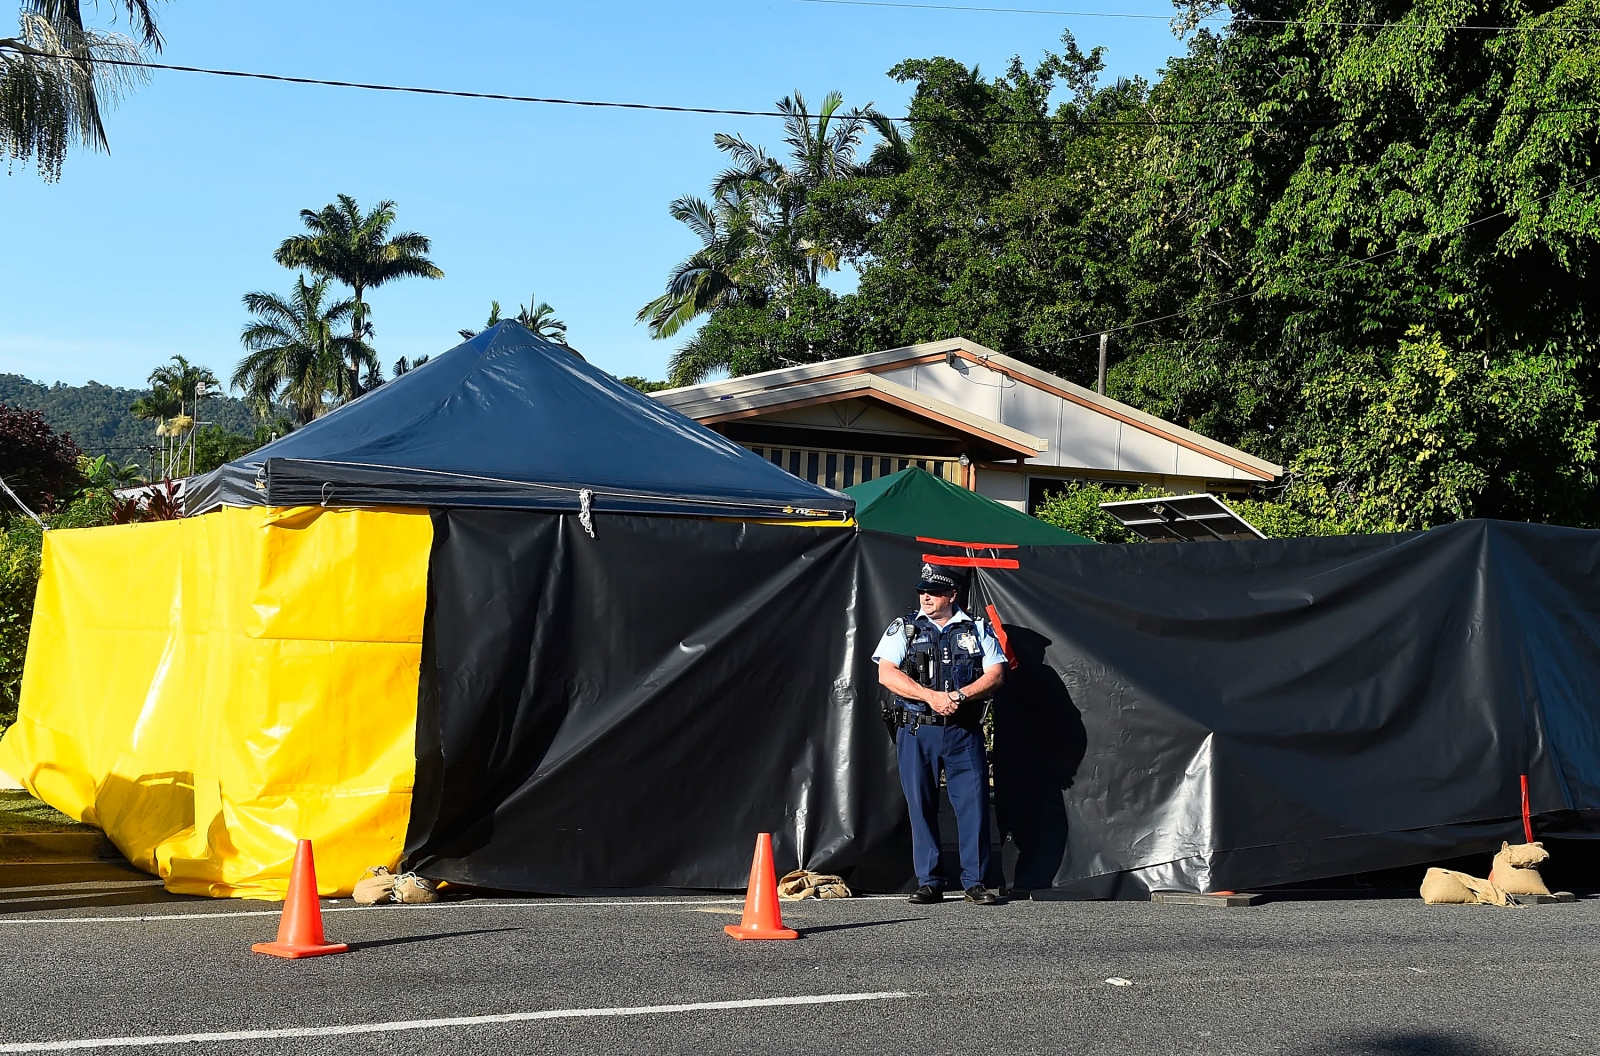 Cairns Stabbing 8 Children killed